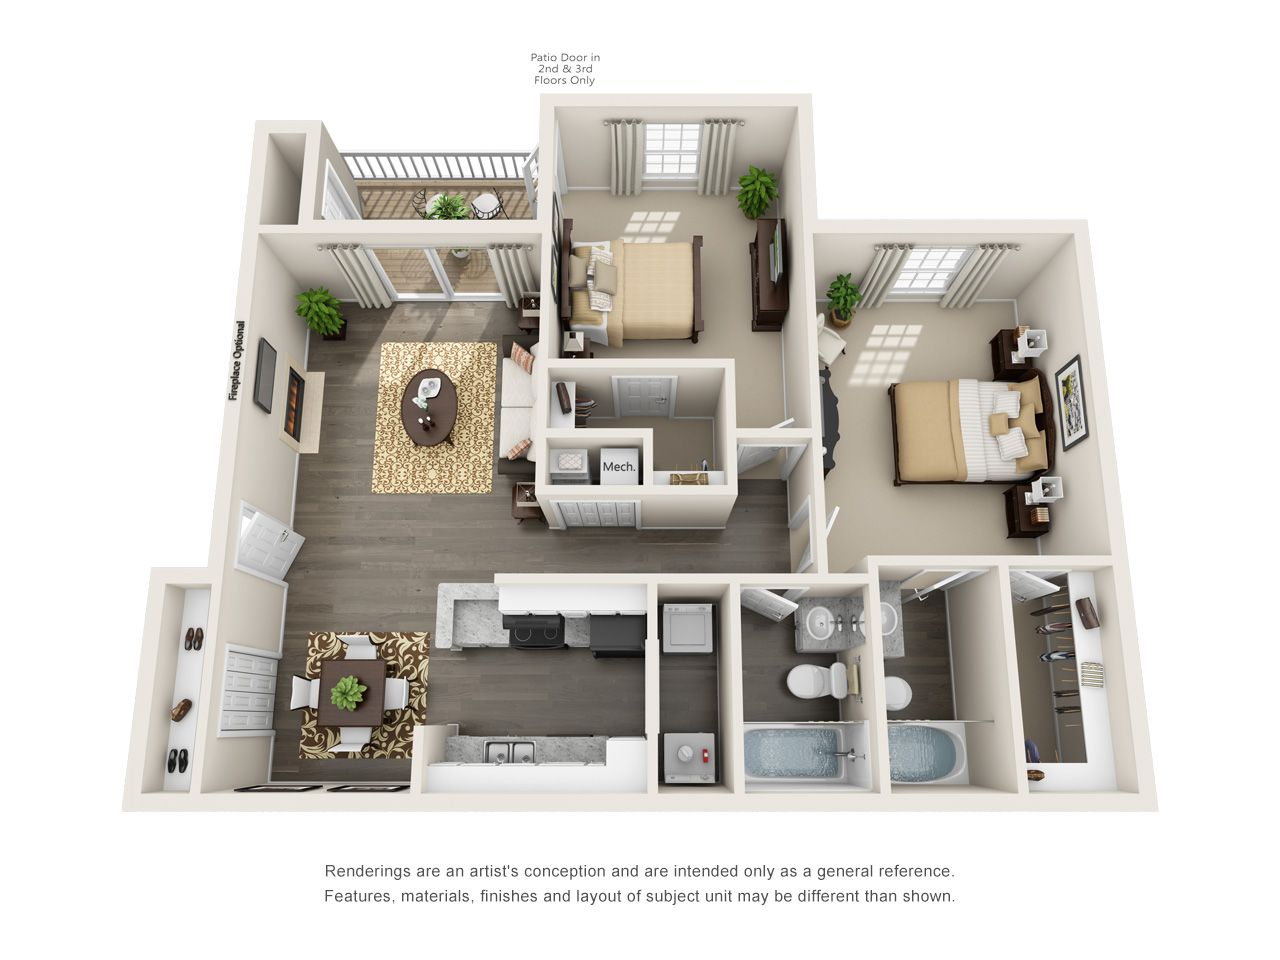 1 2 3 Bedroom Apartments In Mauldin Sc Bedroom Apartment Sims House Plans Apartment Floor Plans